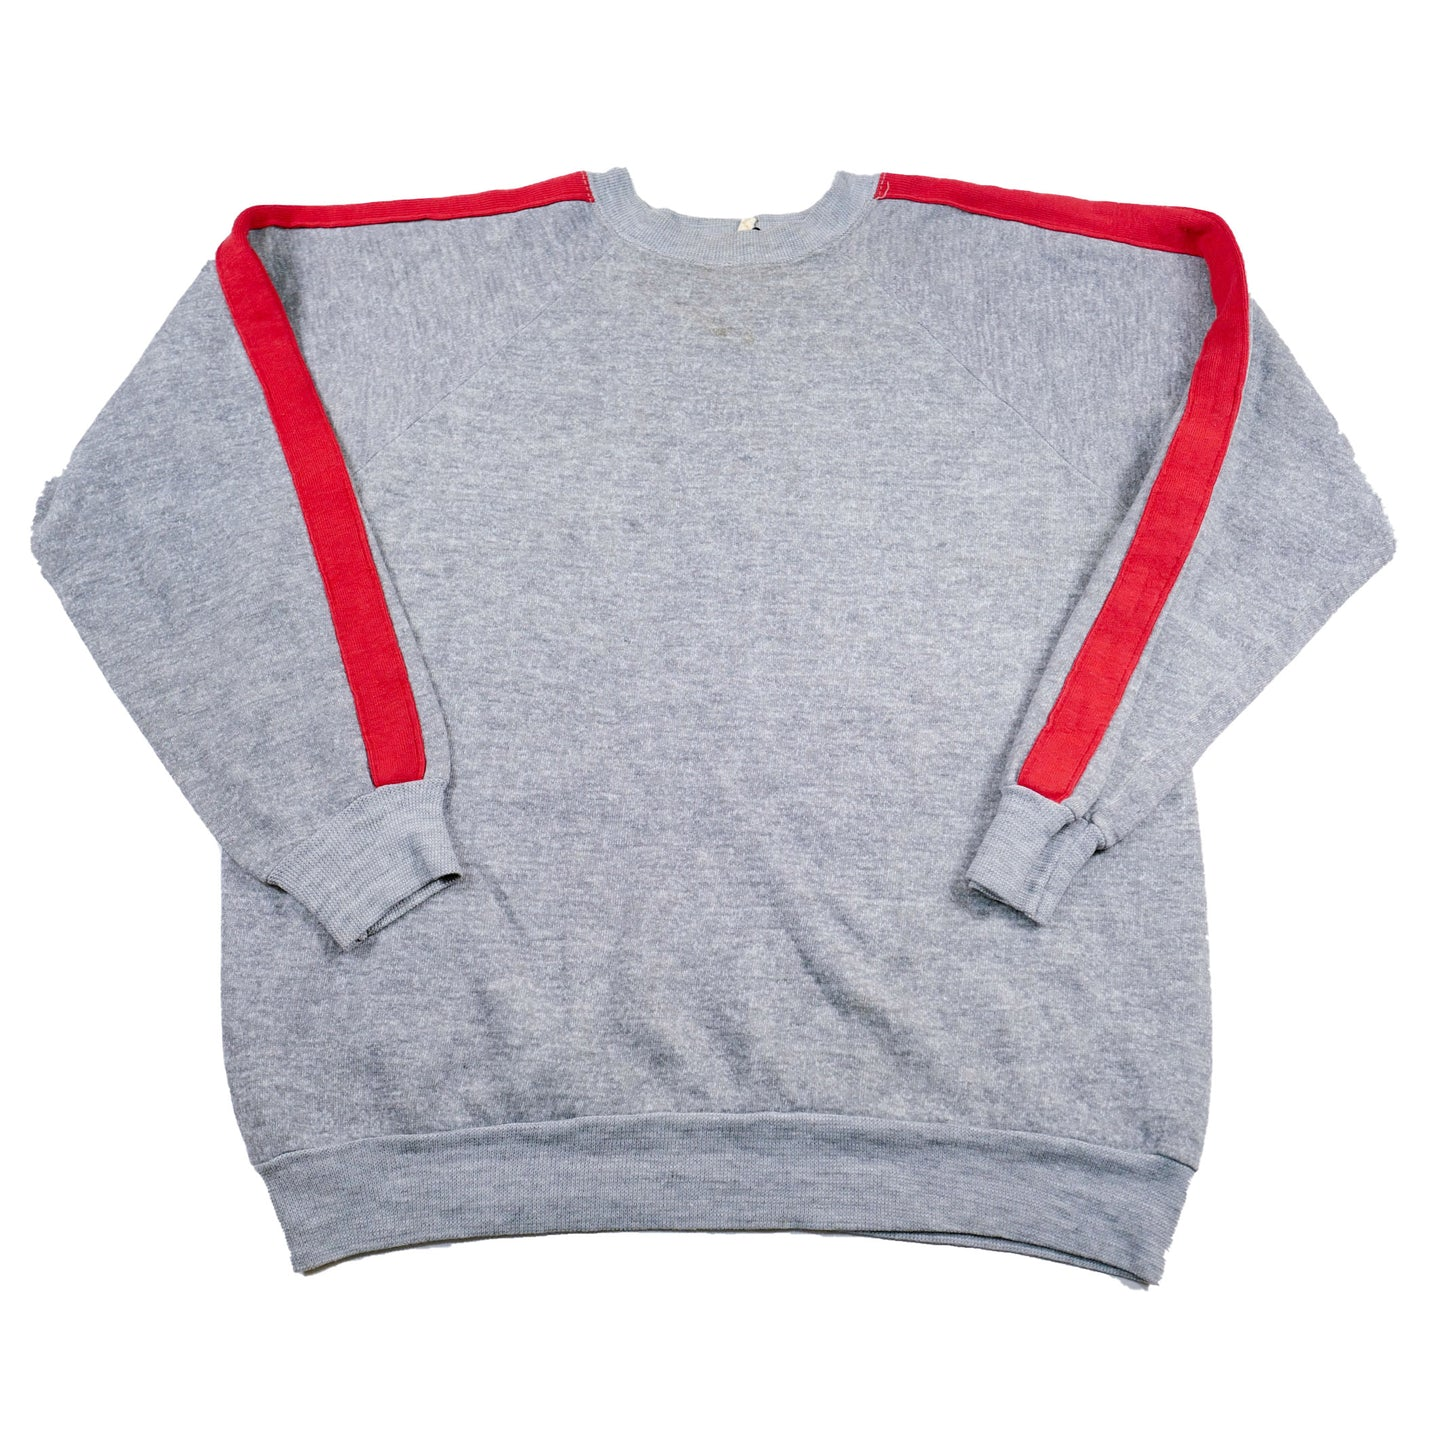 1970's Heather Grey Sweatshirt with Red Racing Arm Stripes